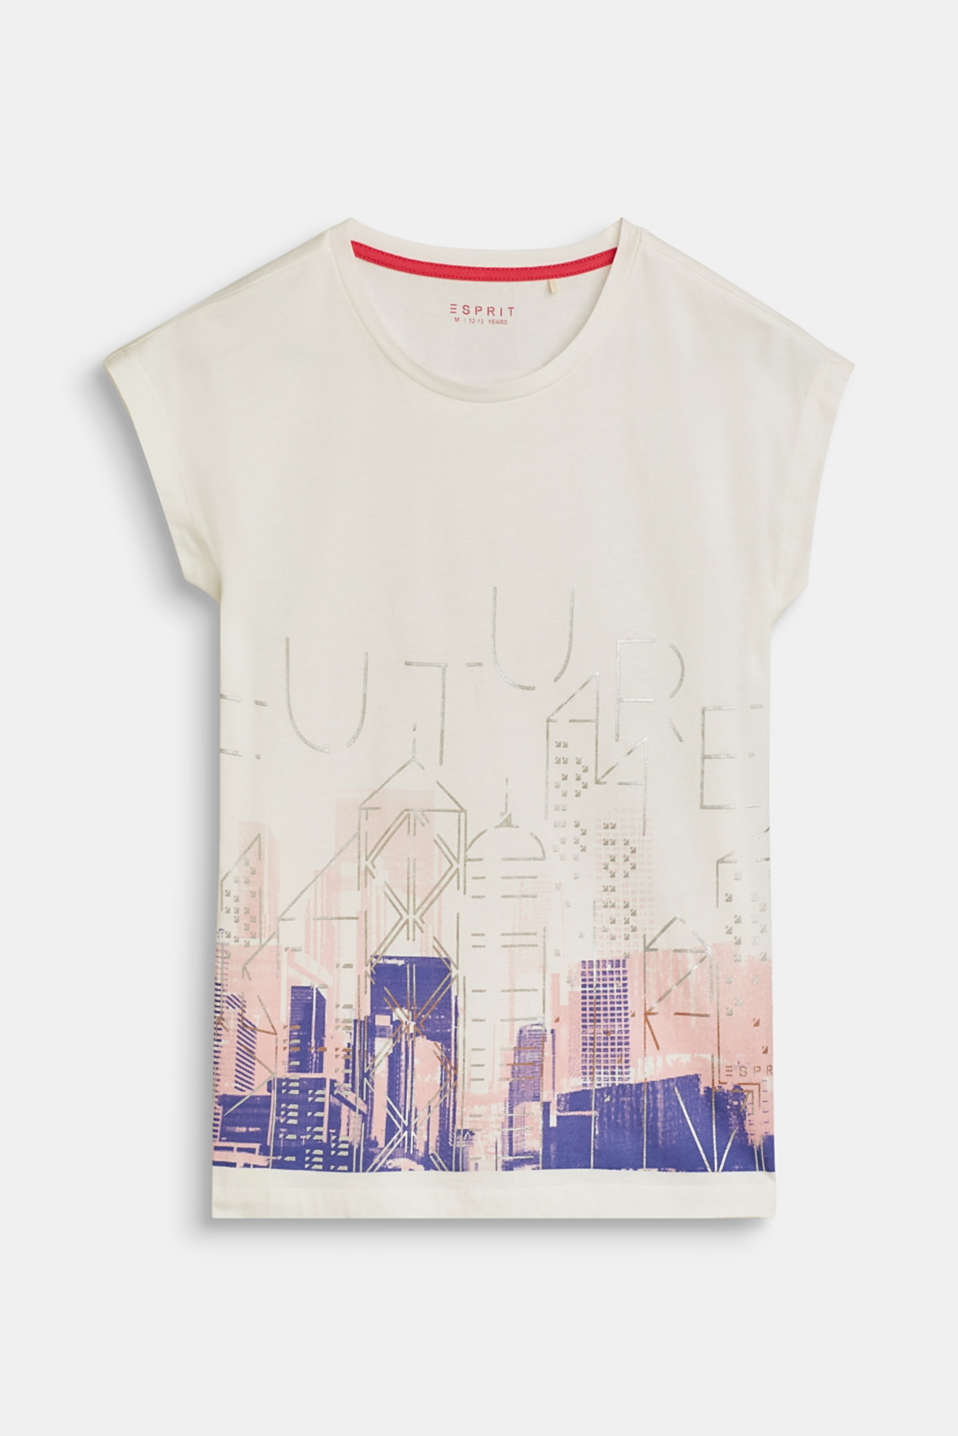 Esprit - T-shirt with a foil print, 100% cotton